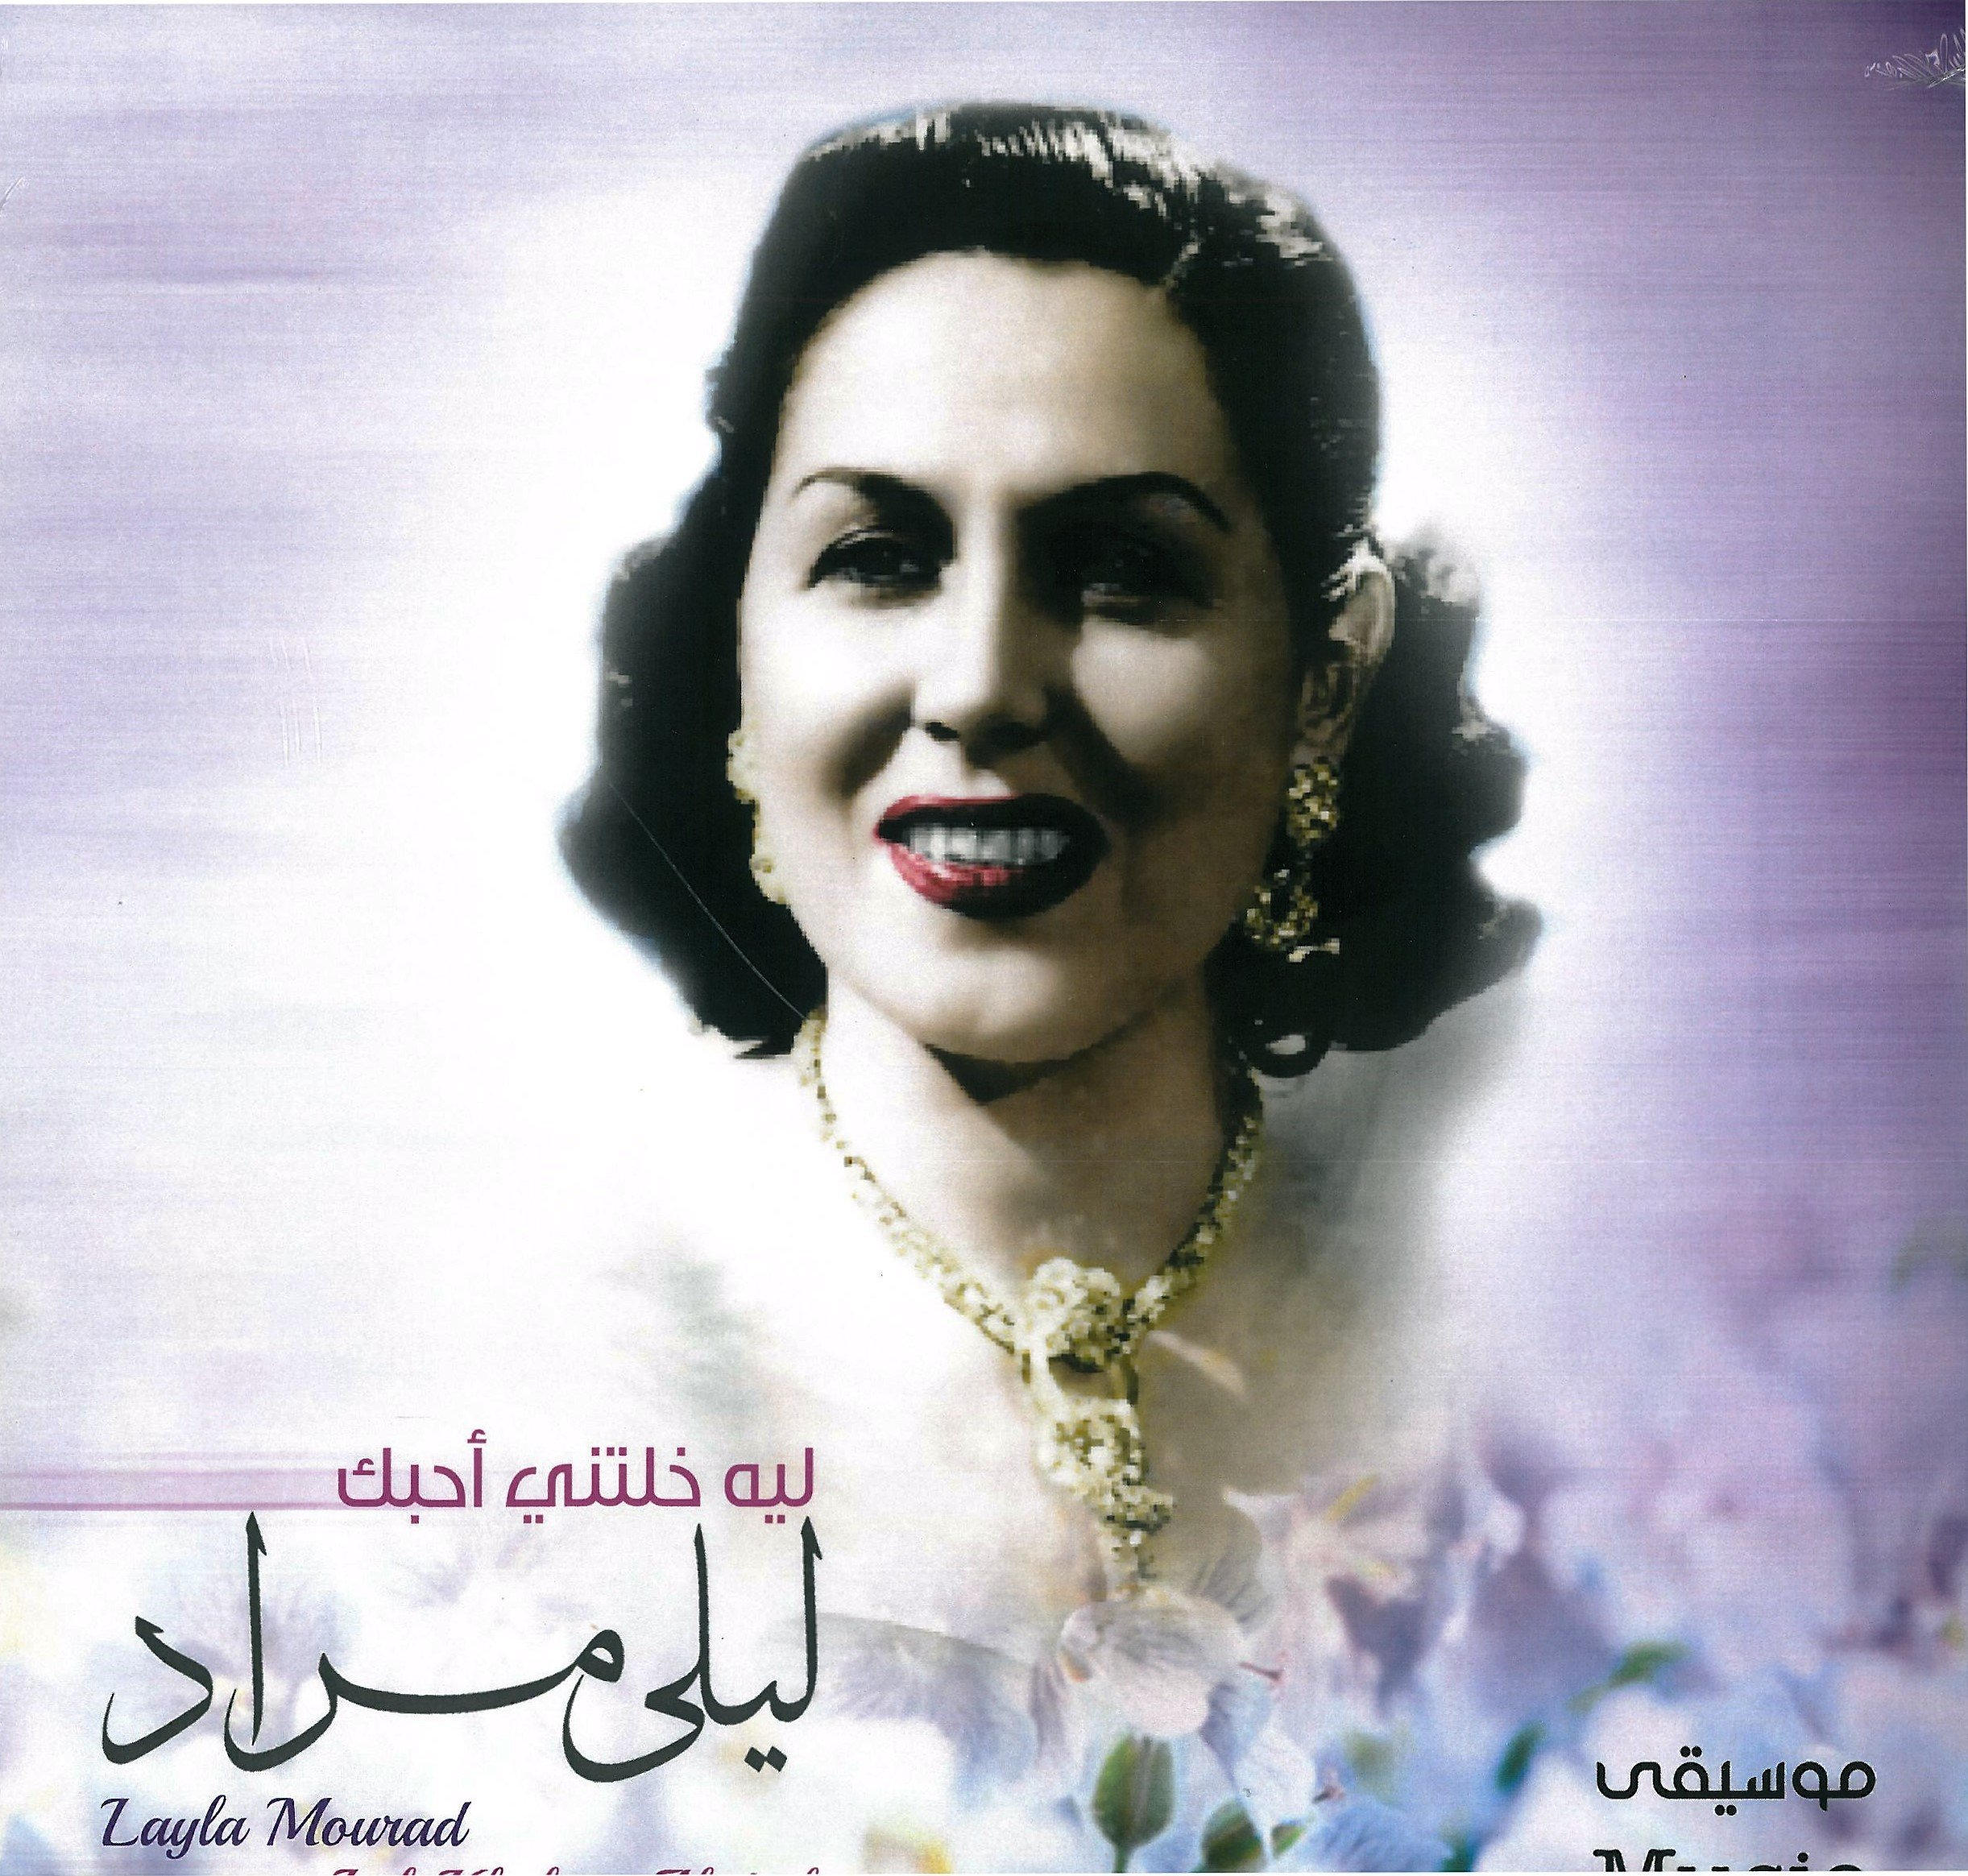 Leh Khalletni Ahebak (Music Of Layla Mourad) by MBI